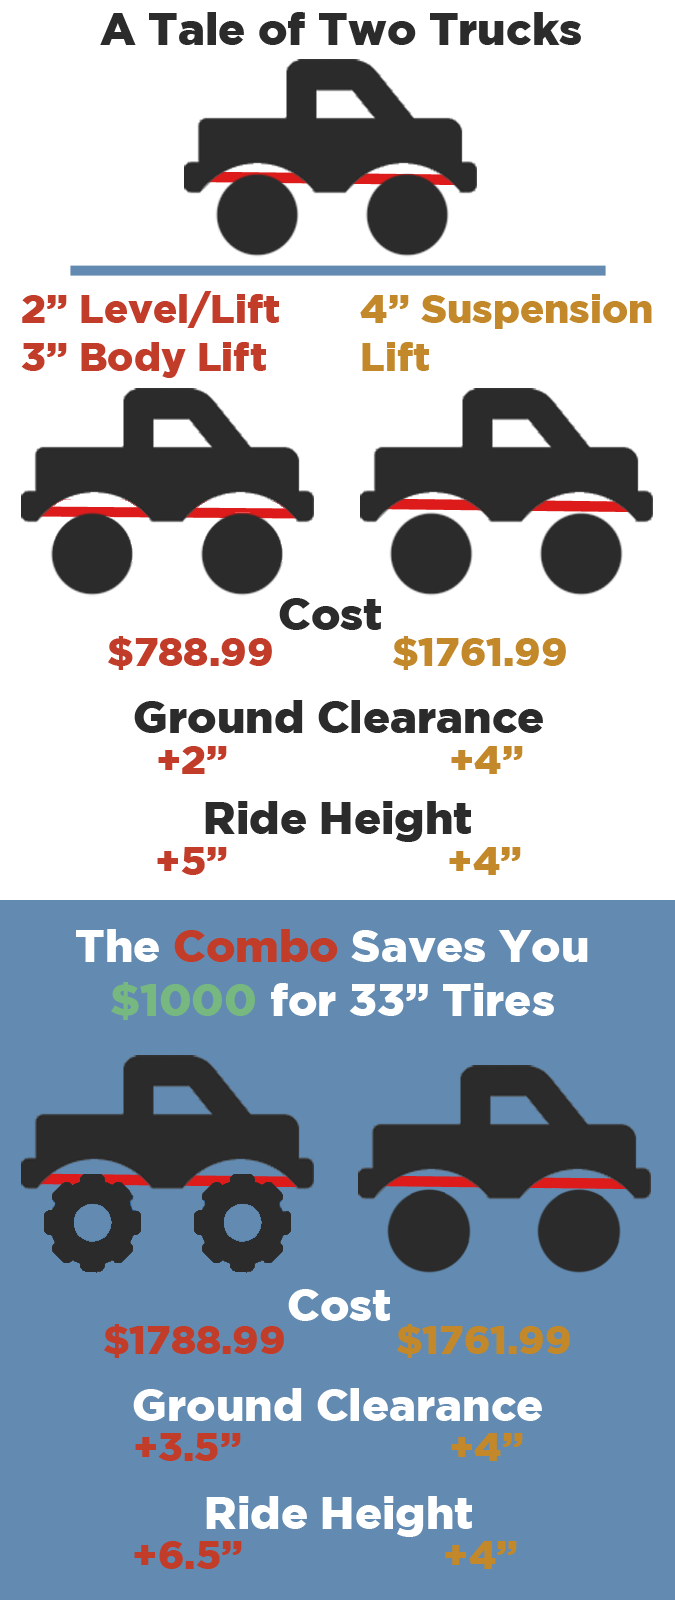 Cost To Lift A Truck >> Body Lift Vs Suspension Lift Which Is The Best For Your